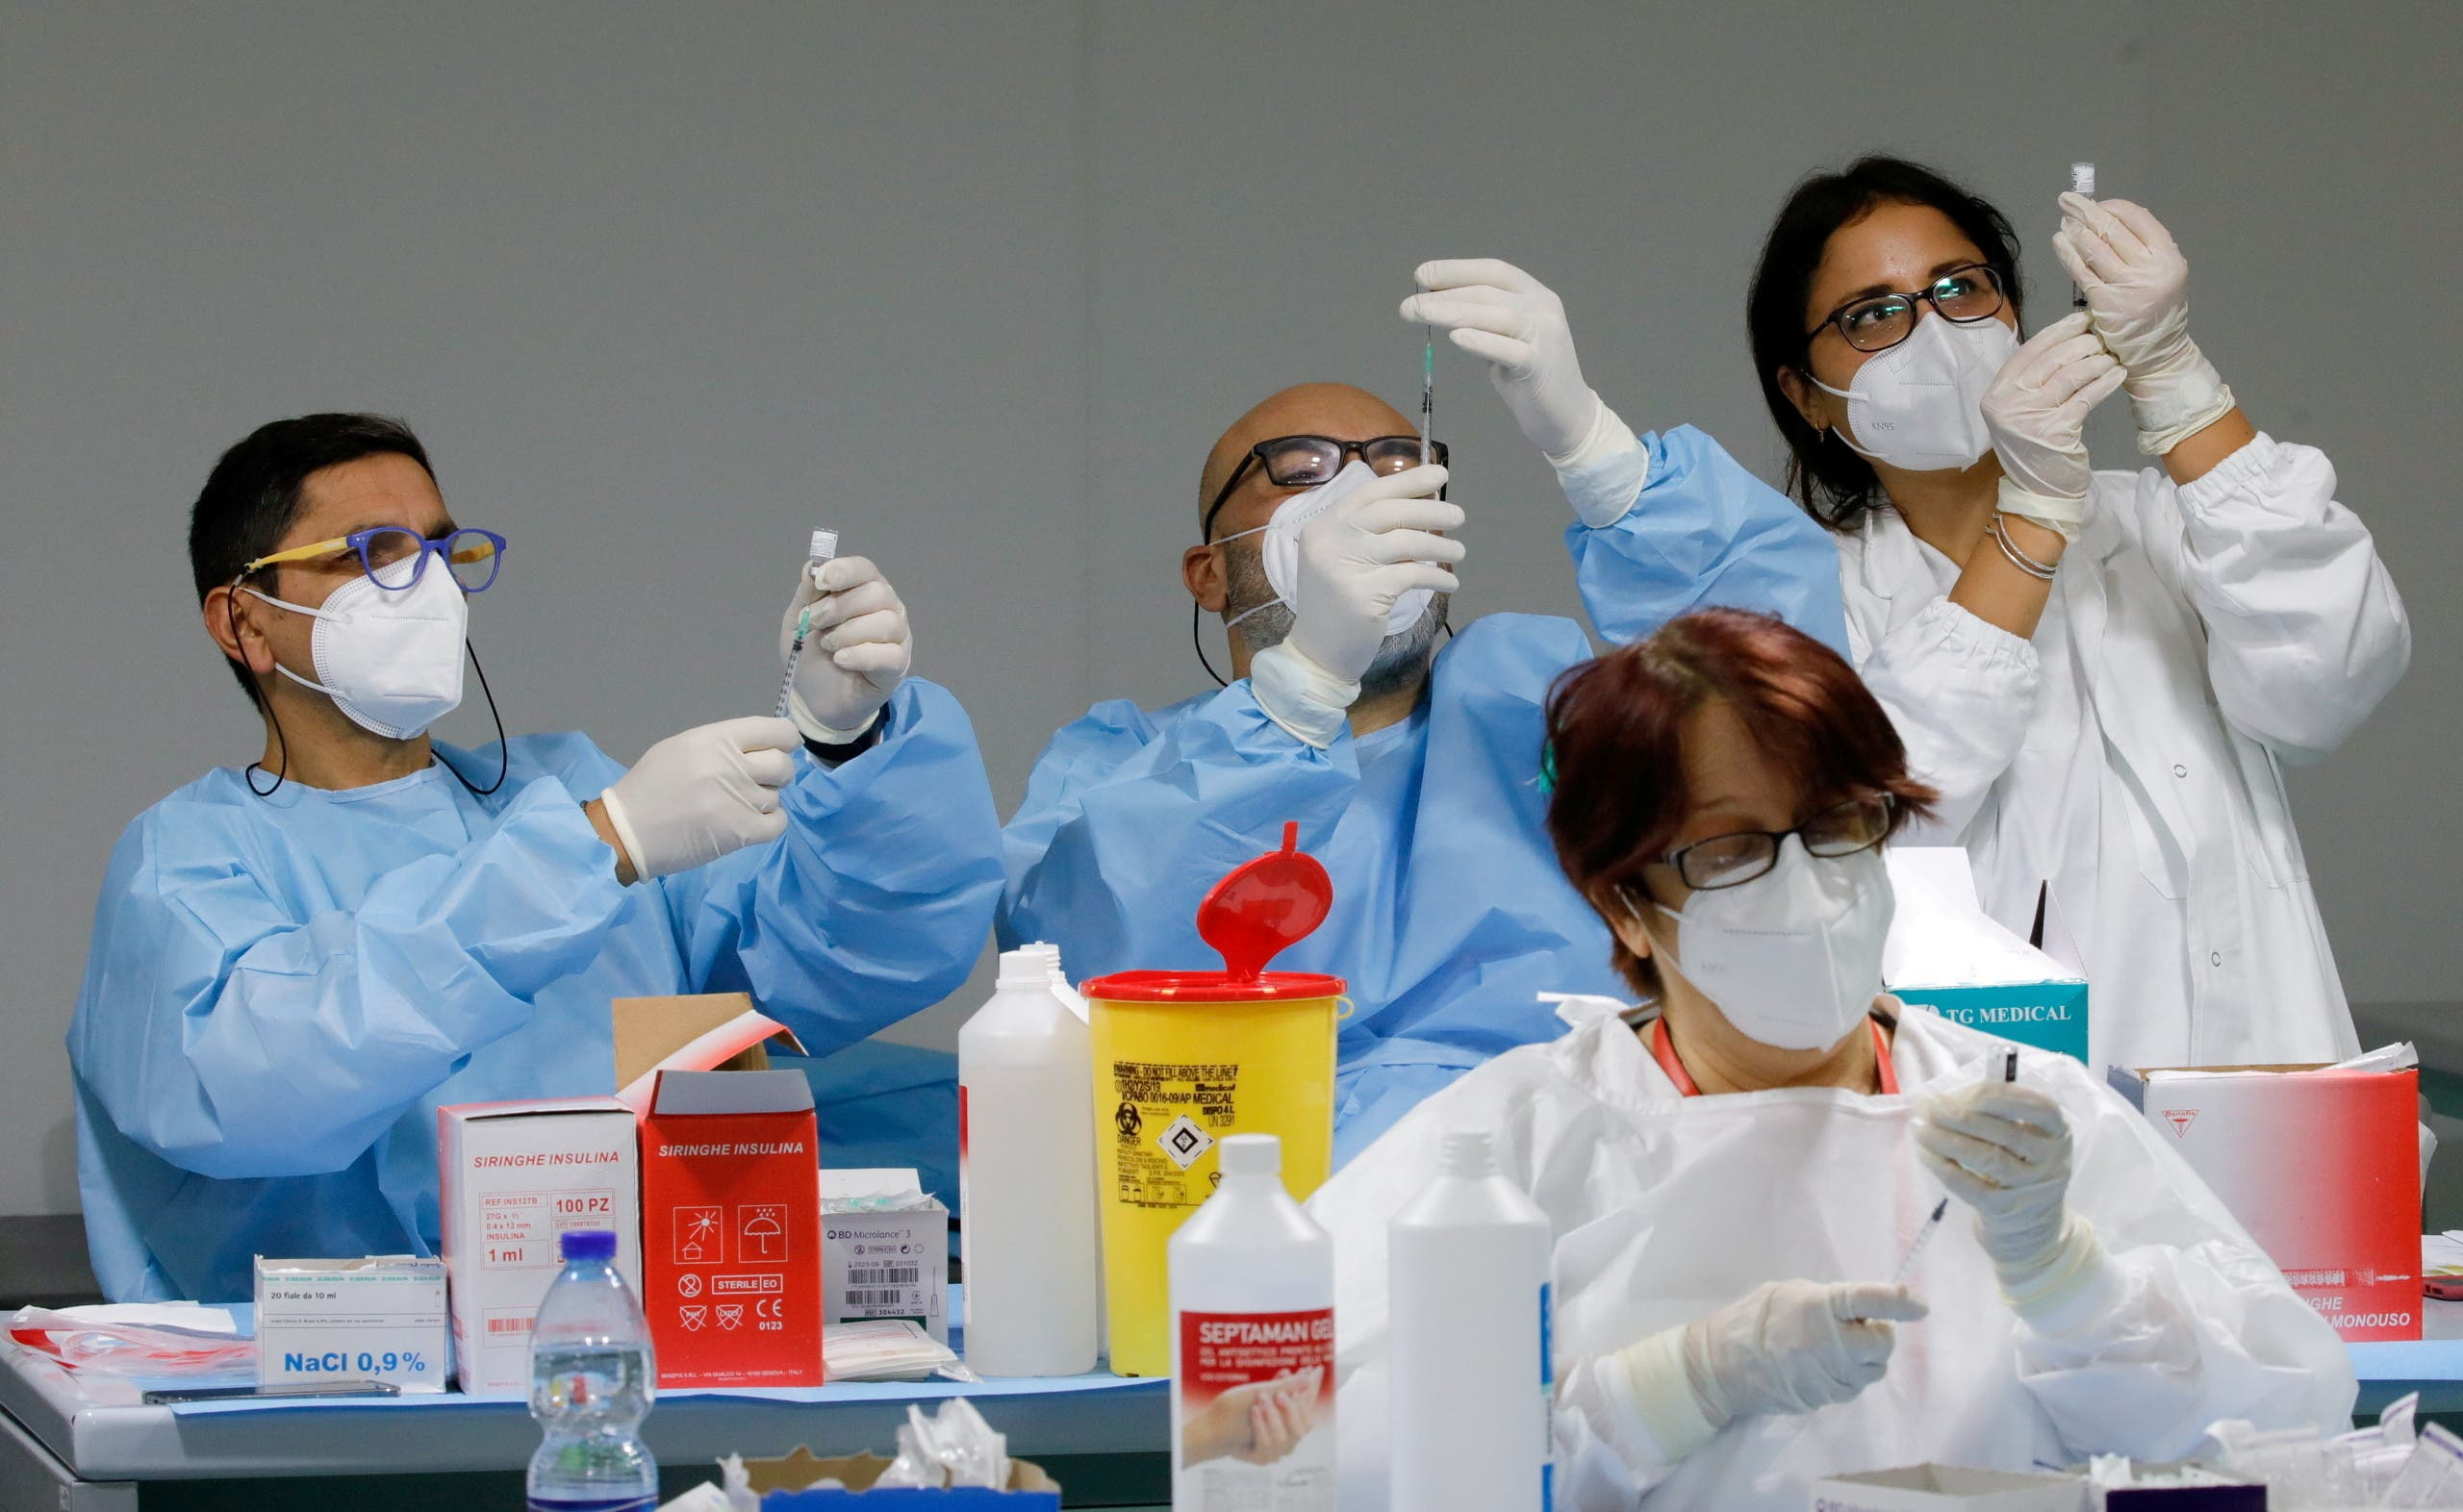 Health workers prepare doses of the Pfizer-BioNTech COVID-19 vaccine at an inoculation centre in Naples, Italy, January 8, 2021. (File Photo: Reuters)